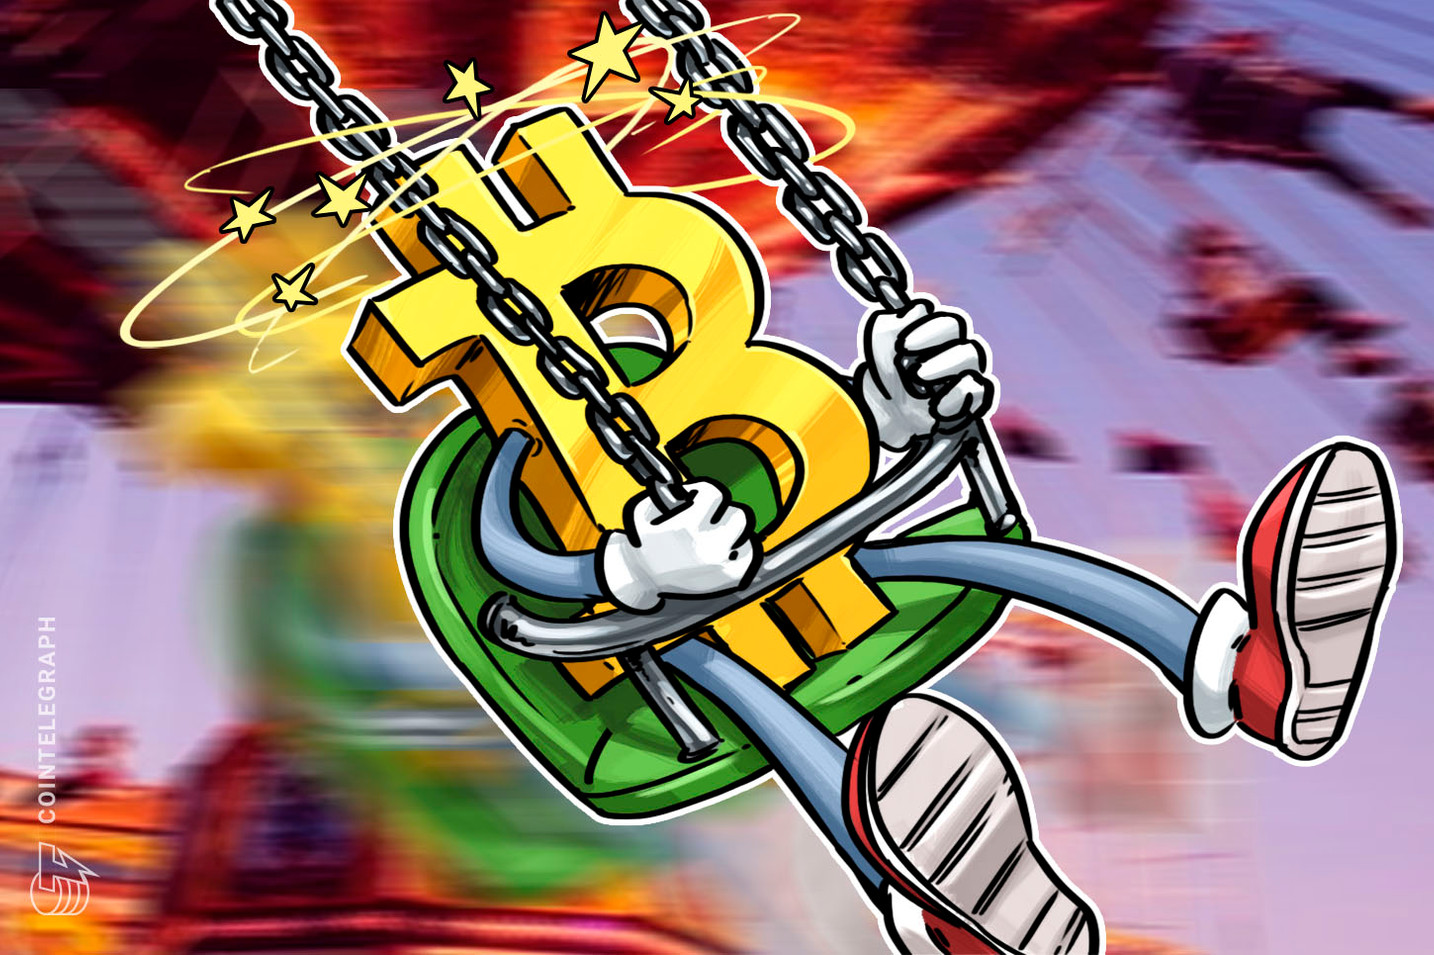 Bitcoin price in flux: Bulls target $11.5K, bears desire drop to $9.8K